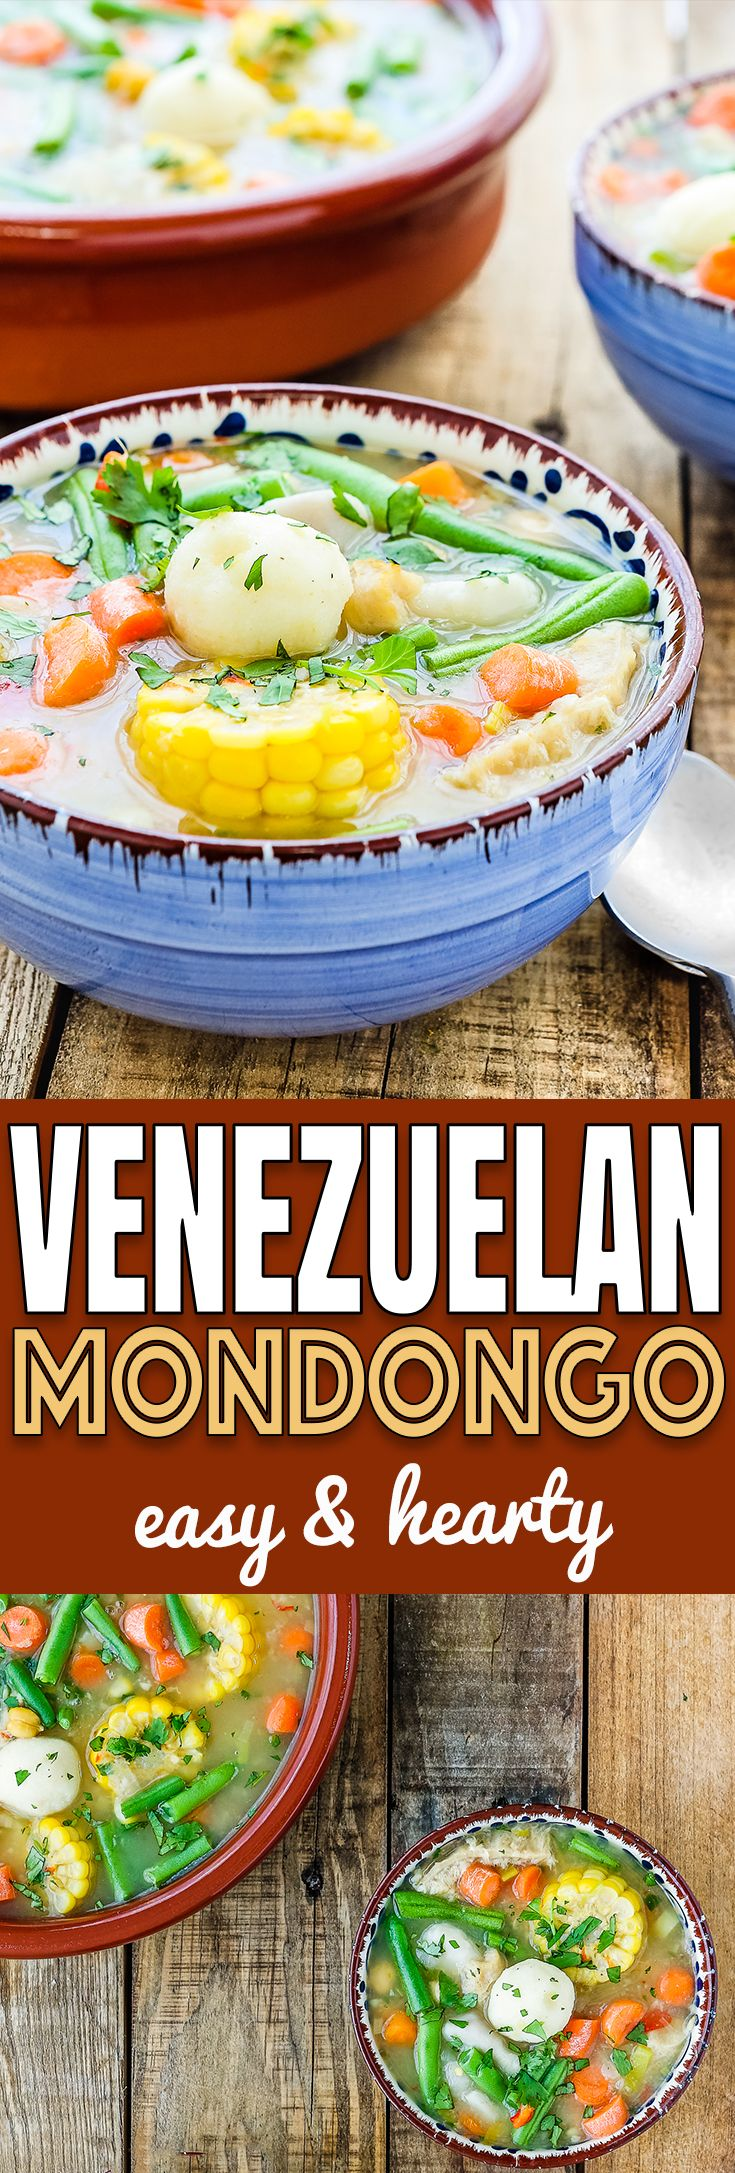 This Venezuelan Mondongo is easy to make and full of flavor. Made with beef tripe (panza), pork's feet (paticas de cochino) and lots of vegetables, this tripe stew will be a pleasant surprise for your palate. Be adventurous and give it a try! https://mommyshomecooking.comThis Venezuelan Mondongo is easy to make and full of flavor. Made with beef tripe (panza), pork's feet (paticas de cochino) and lots of vegetables, this tripe stew will be a pleasant surprise for your palate. Be adventurous…